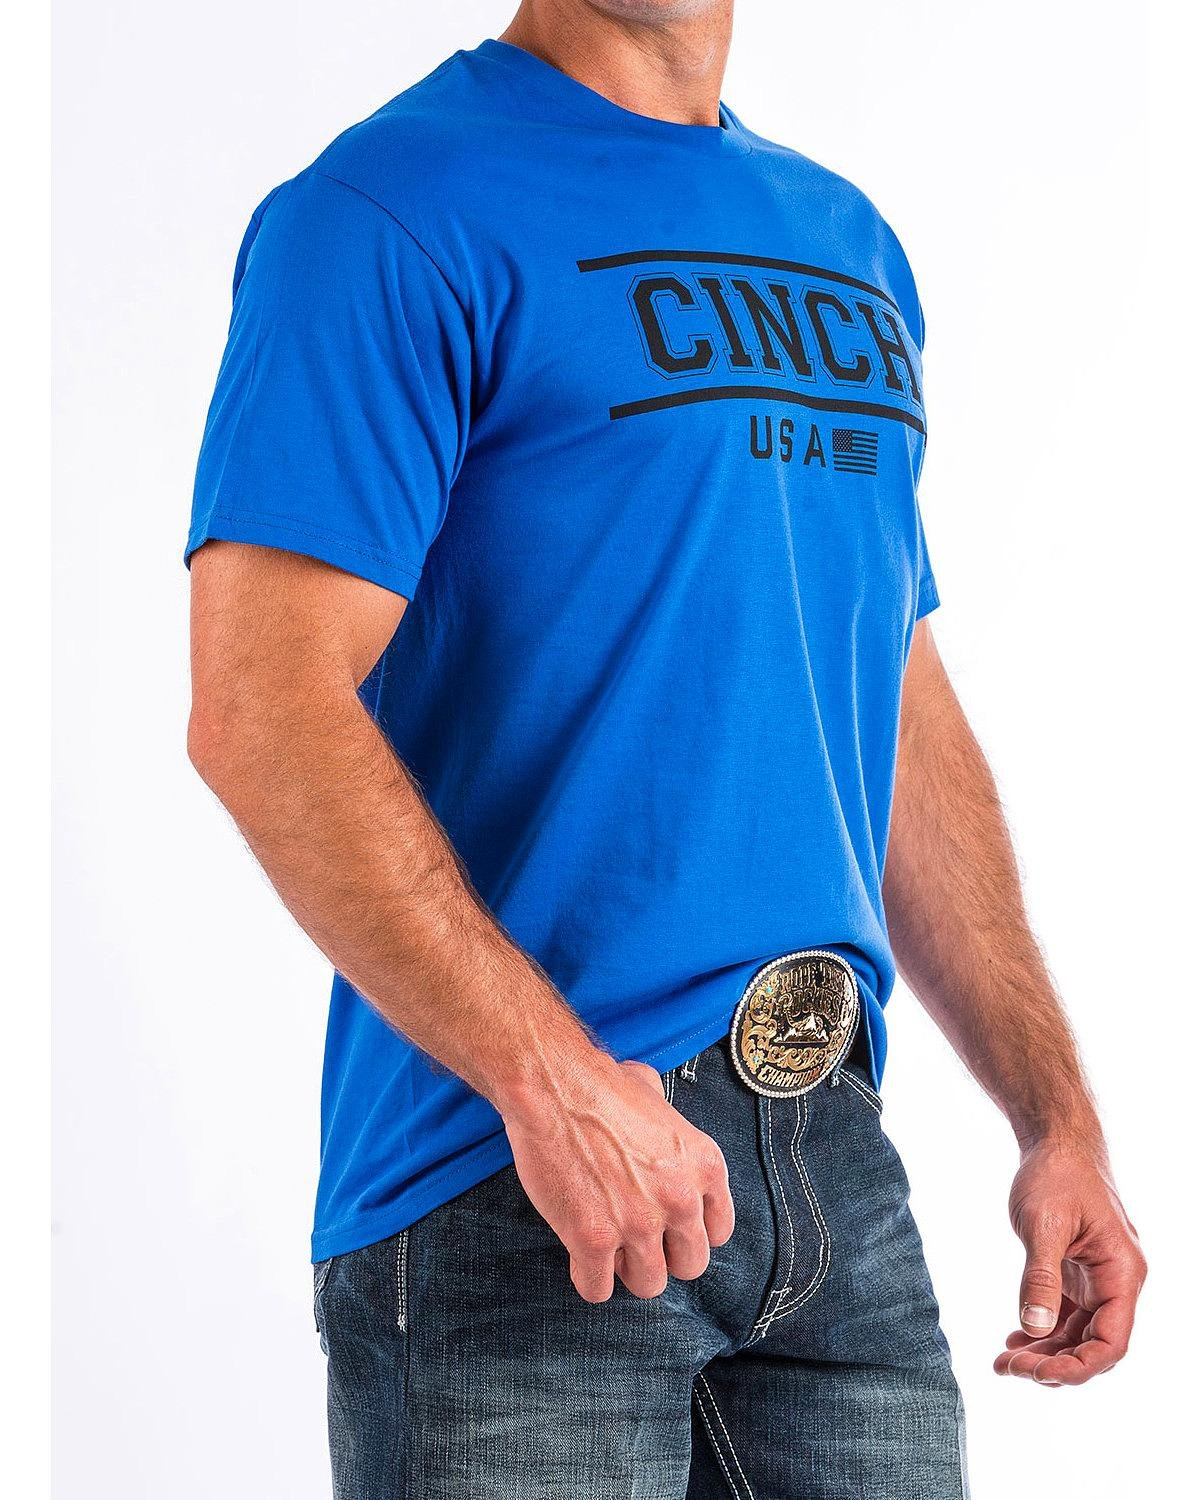 Cinch  Men's Short Sleeve Jersey Tee Blue X-Large by Cinch (Image #2)